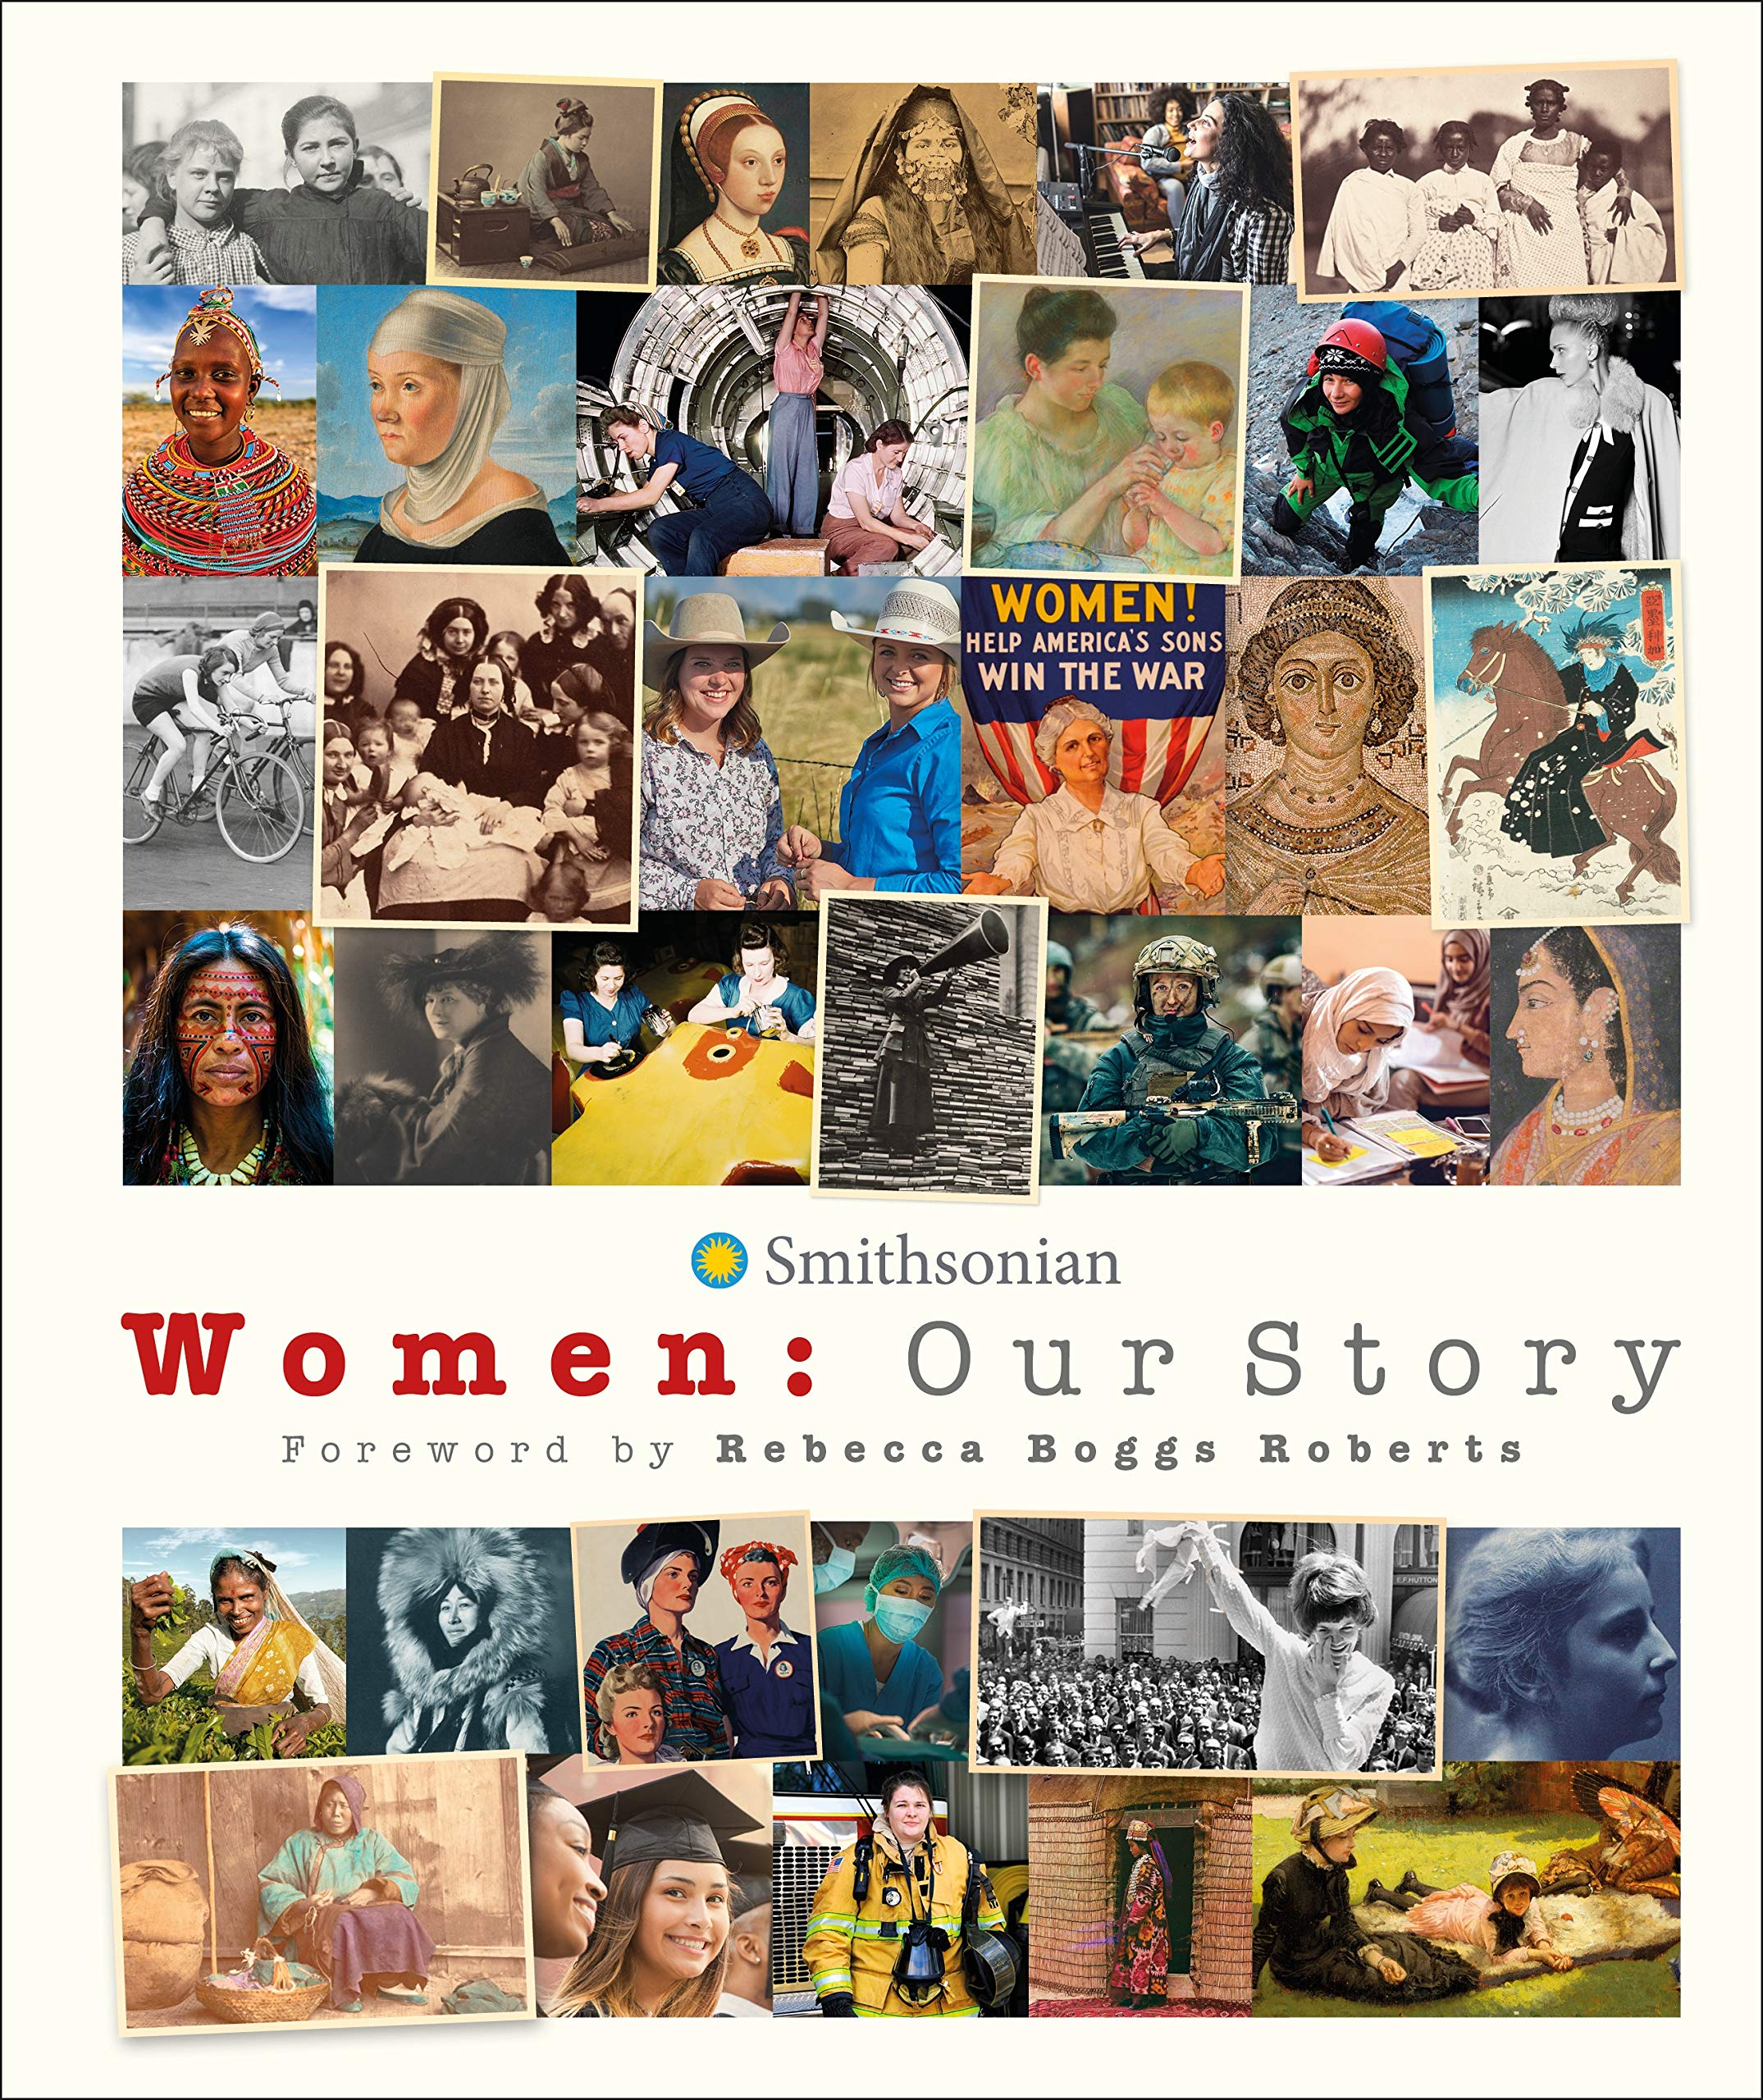 Women : our story / foreword, Rebecca Boggs Roberts